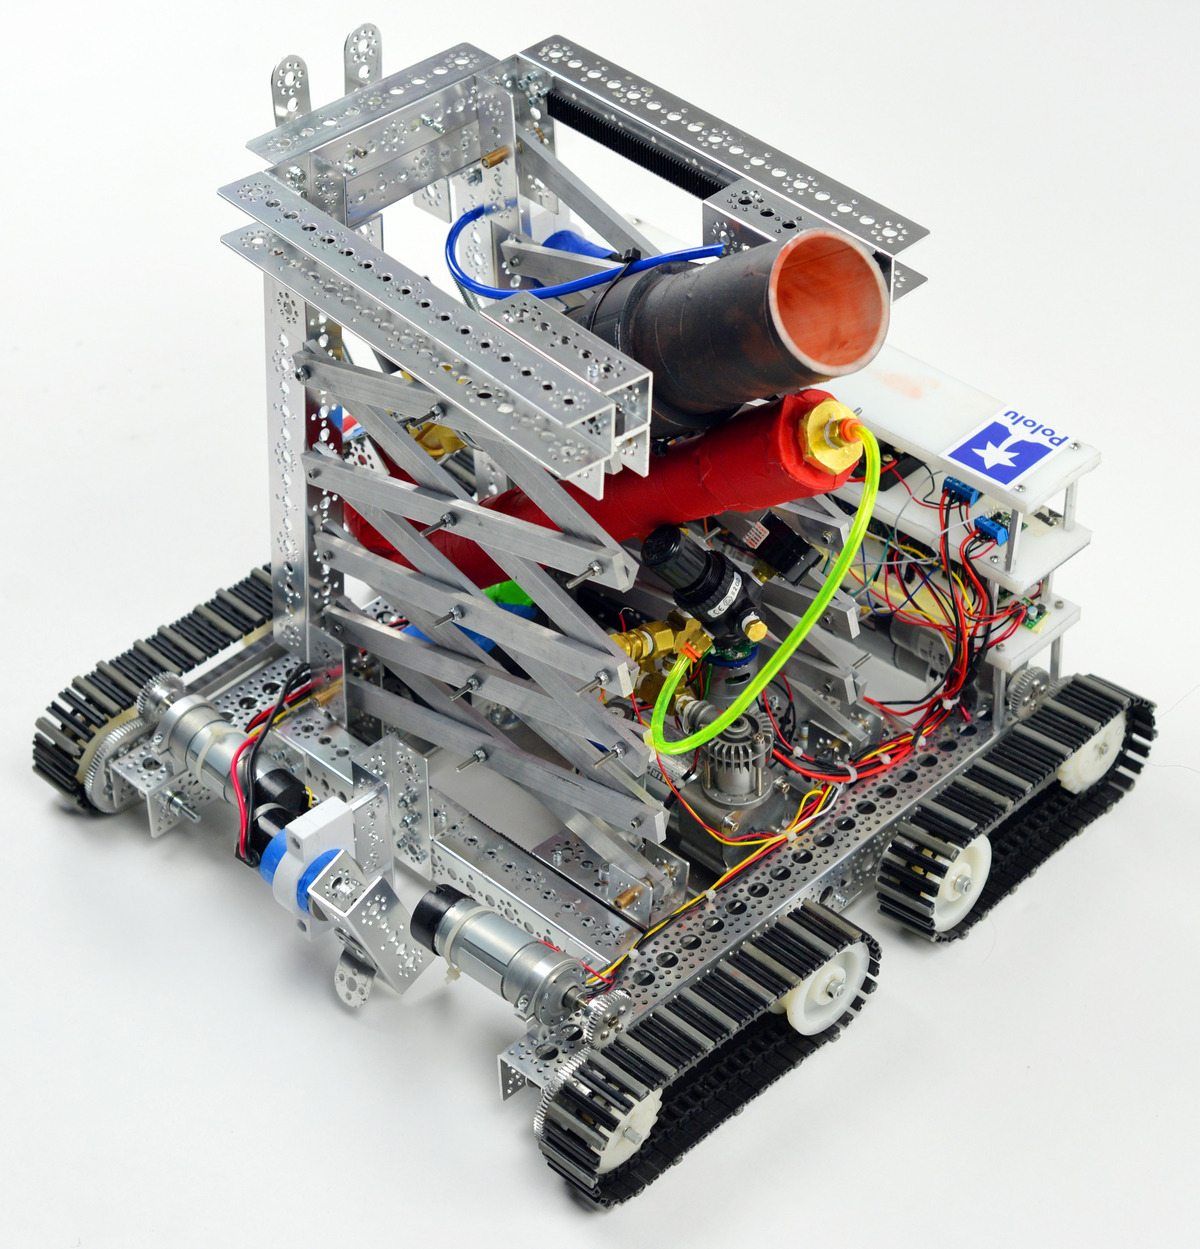 hight resolution of it has been over a year since my last first blog post about my mini sumo robot since then i have been busy studying to earn a mechanical engineering